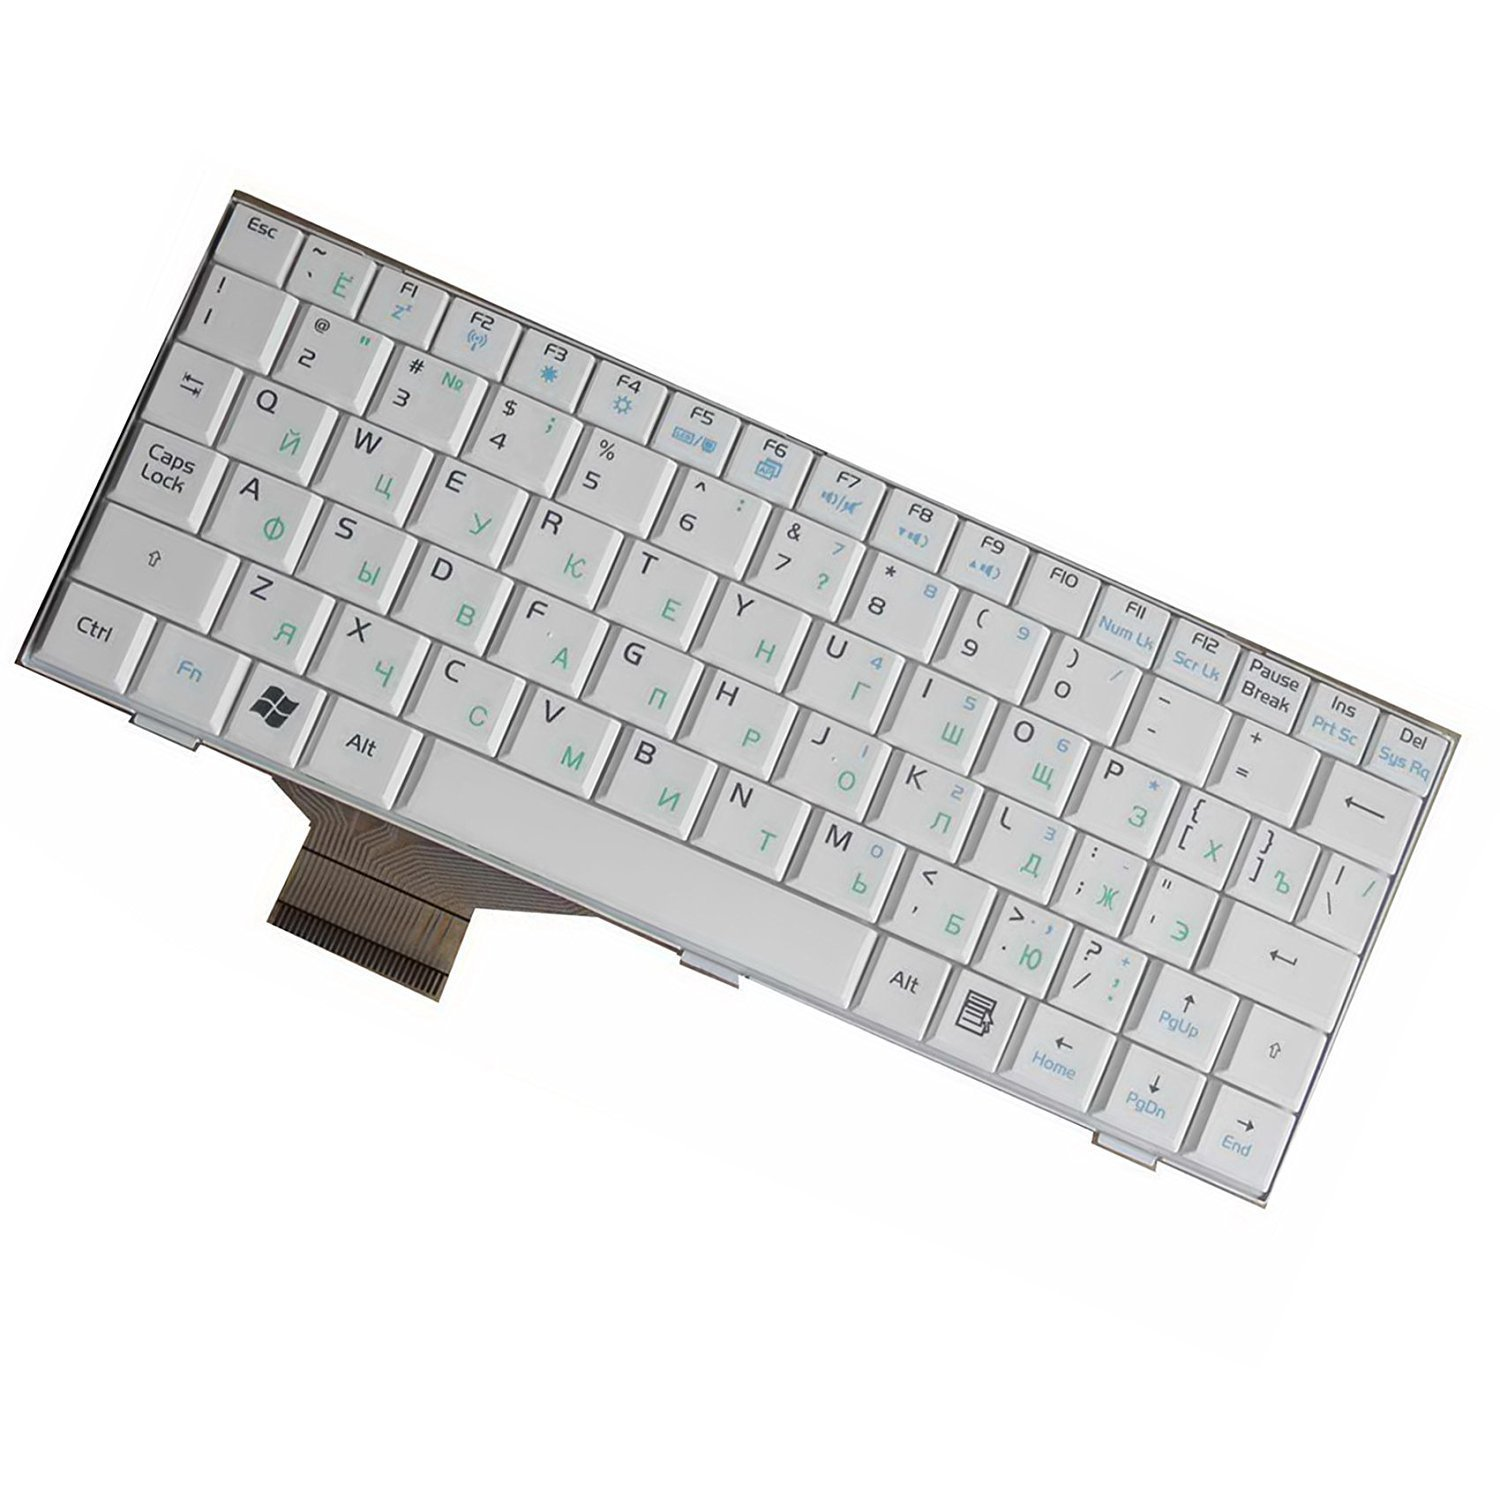 YEECHUN White Russian/RU QWERTY Keyboard For Asus Eee PC 700 701 701SD 701SDX 900 901 900hd 900A 2G 4G 8G Series New Notebook Replacement Accessories Component Parts White